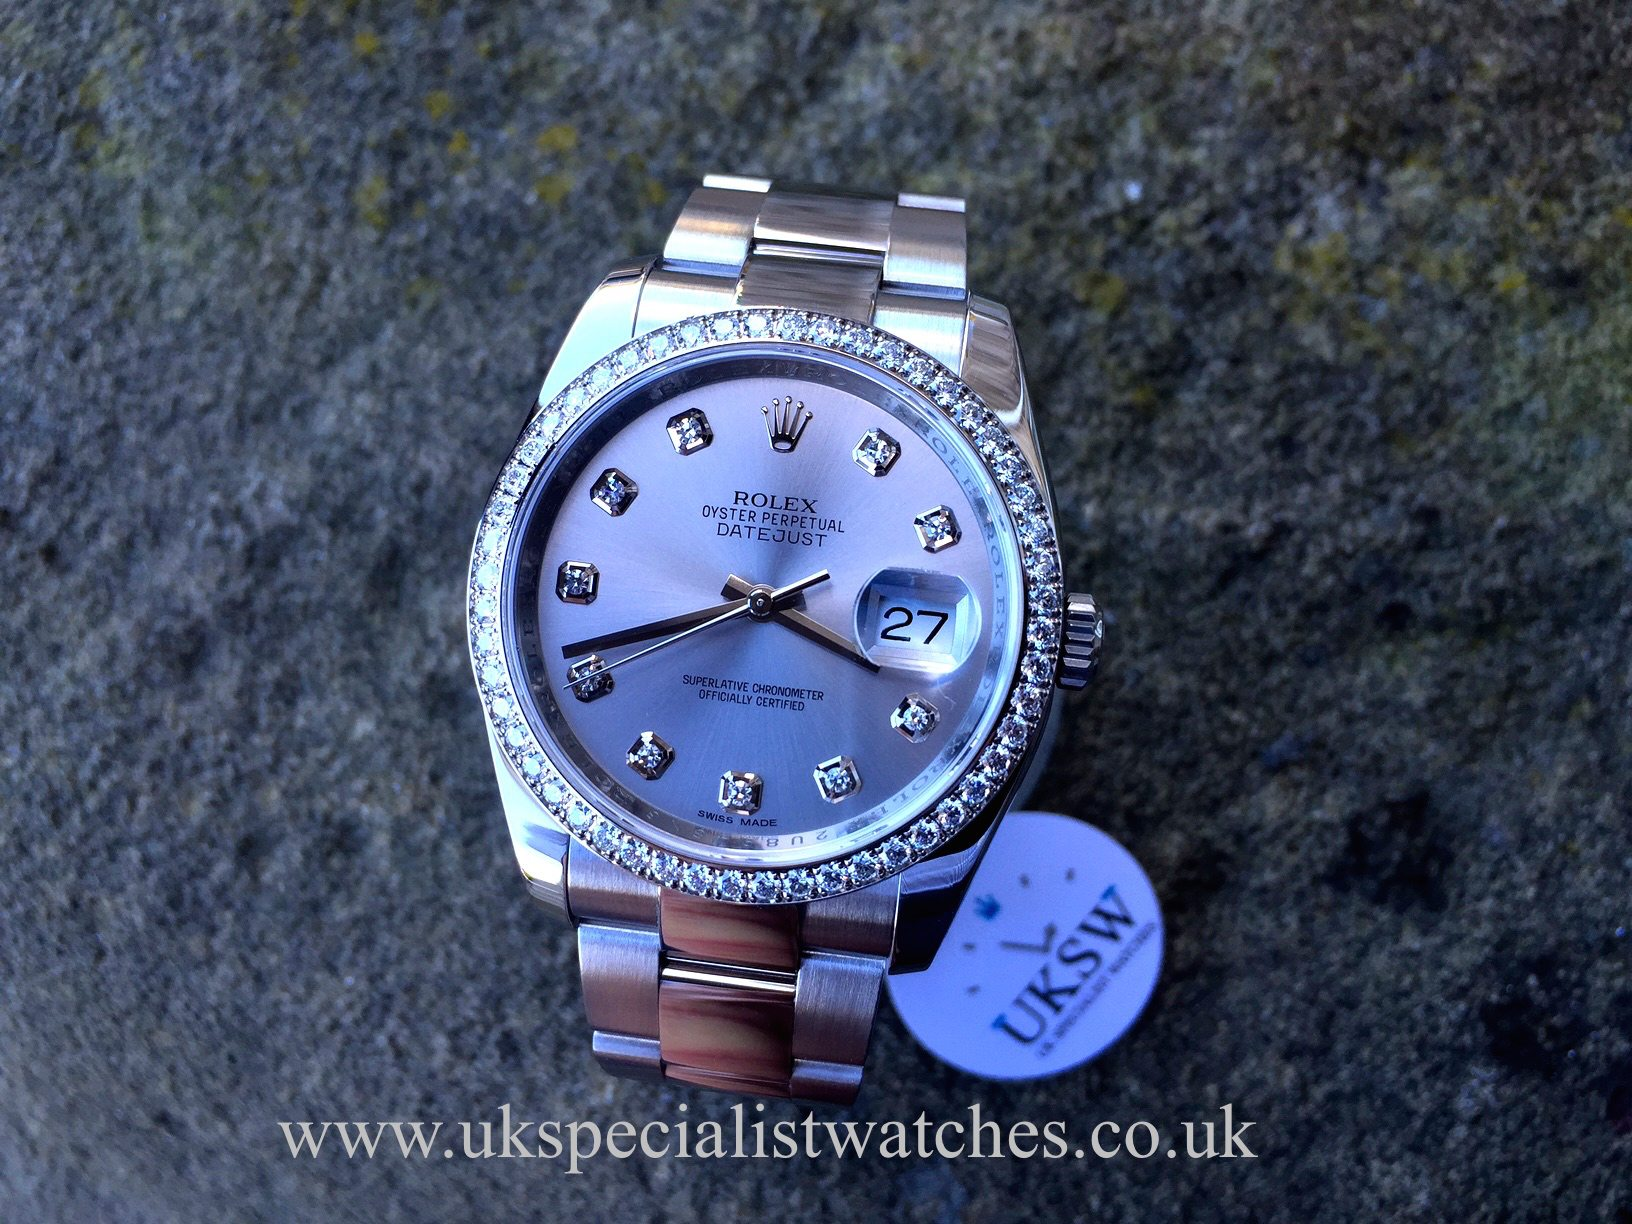 Rolex datejust 36mm diamond bezel diamond dial 116234 uk specialist watches for Diamond dial watch